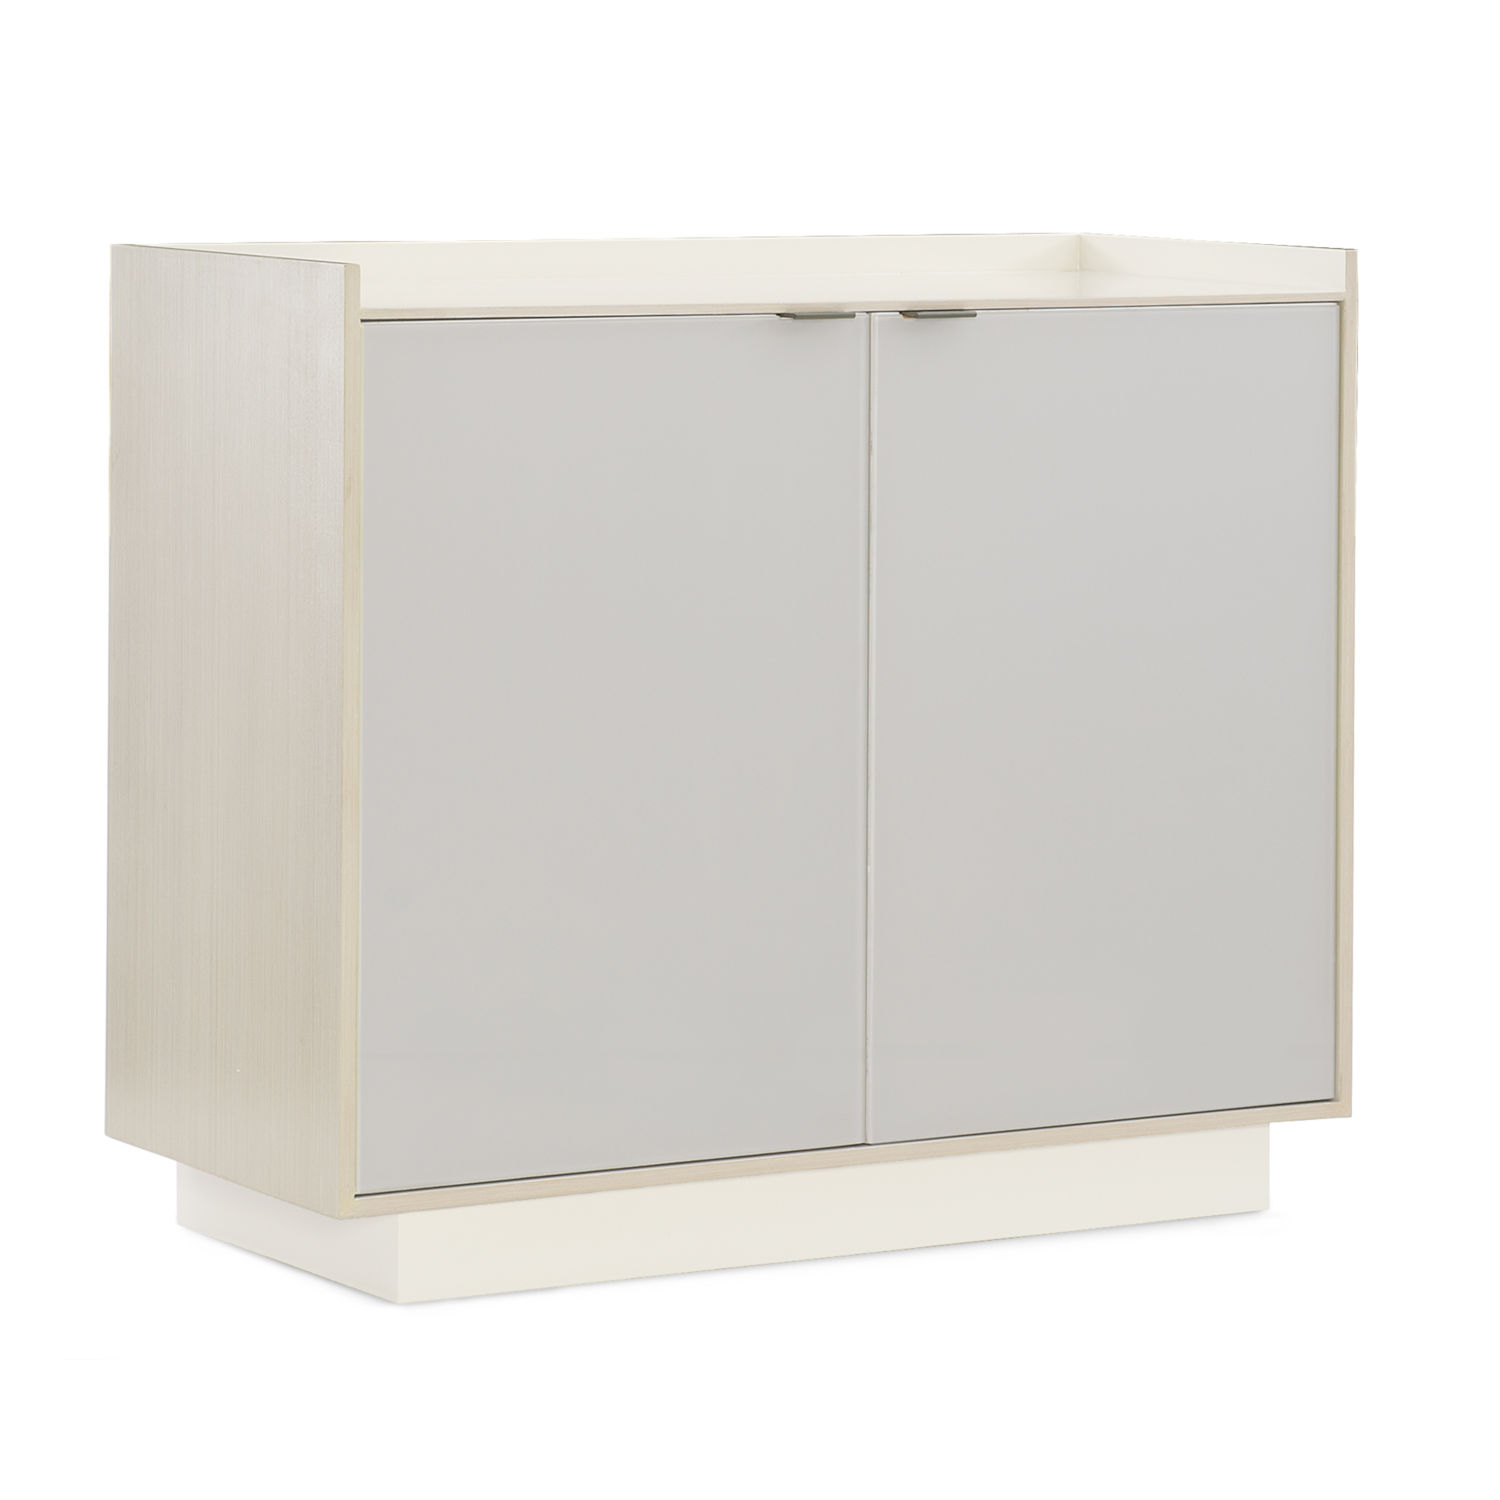 Accent Cabinets & Chests Category